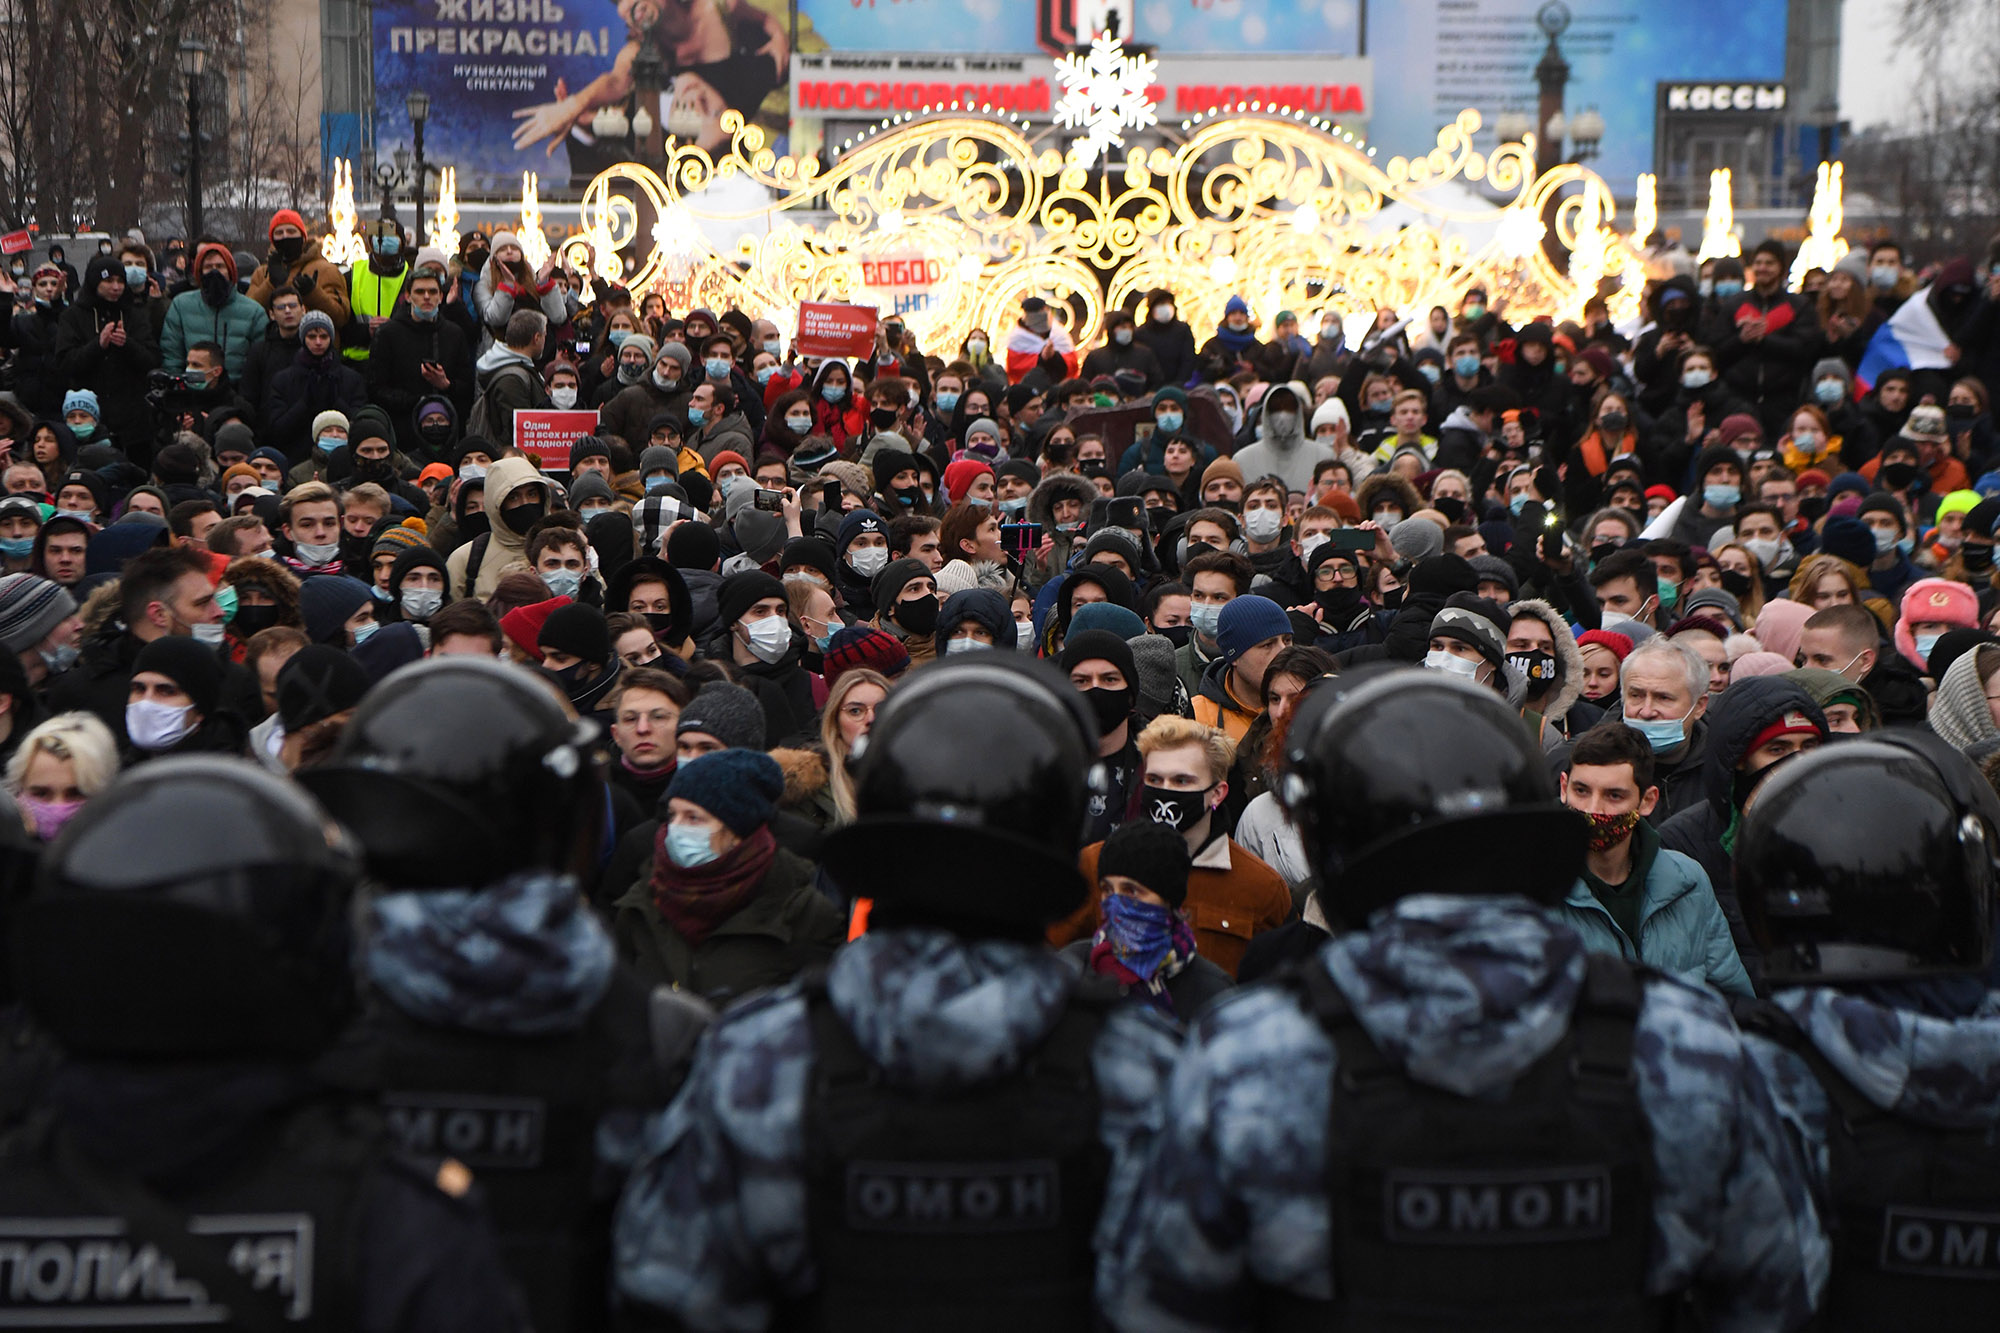 On January 23, riot police stood in front of protesters during a rally in support of Navalny in downtown Moscow.